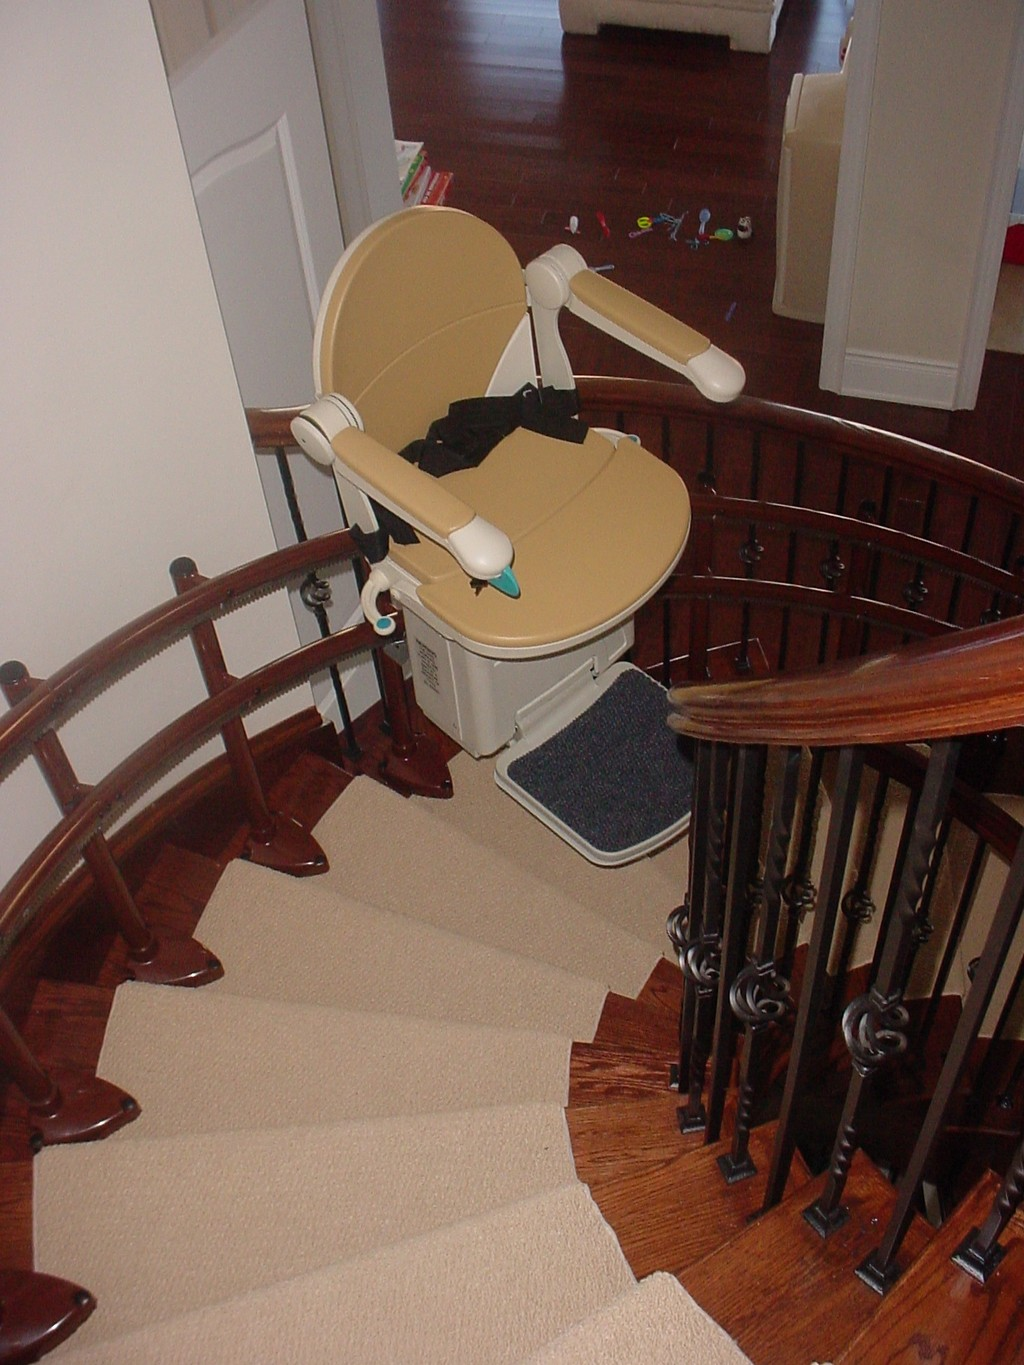 stair lifts prices, stair lift carved, stairlift service, stairlifts reviews